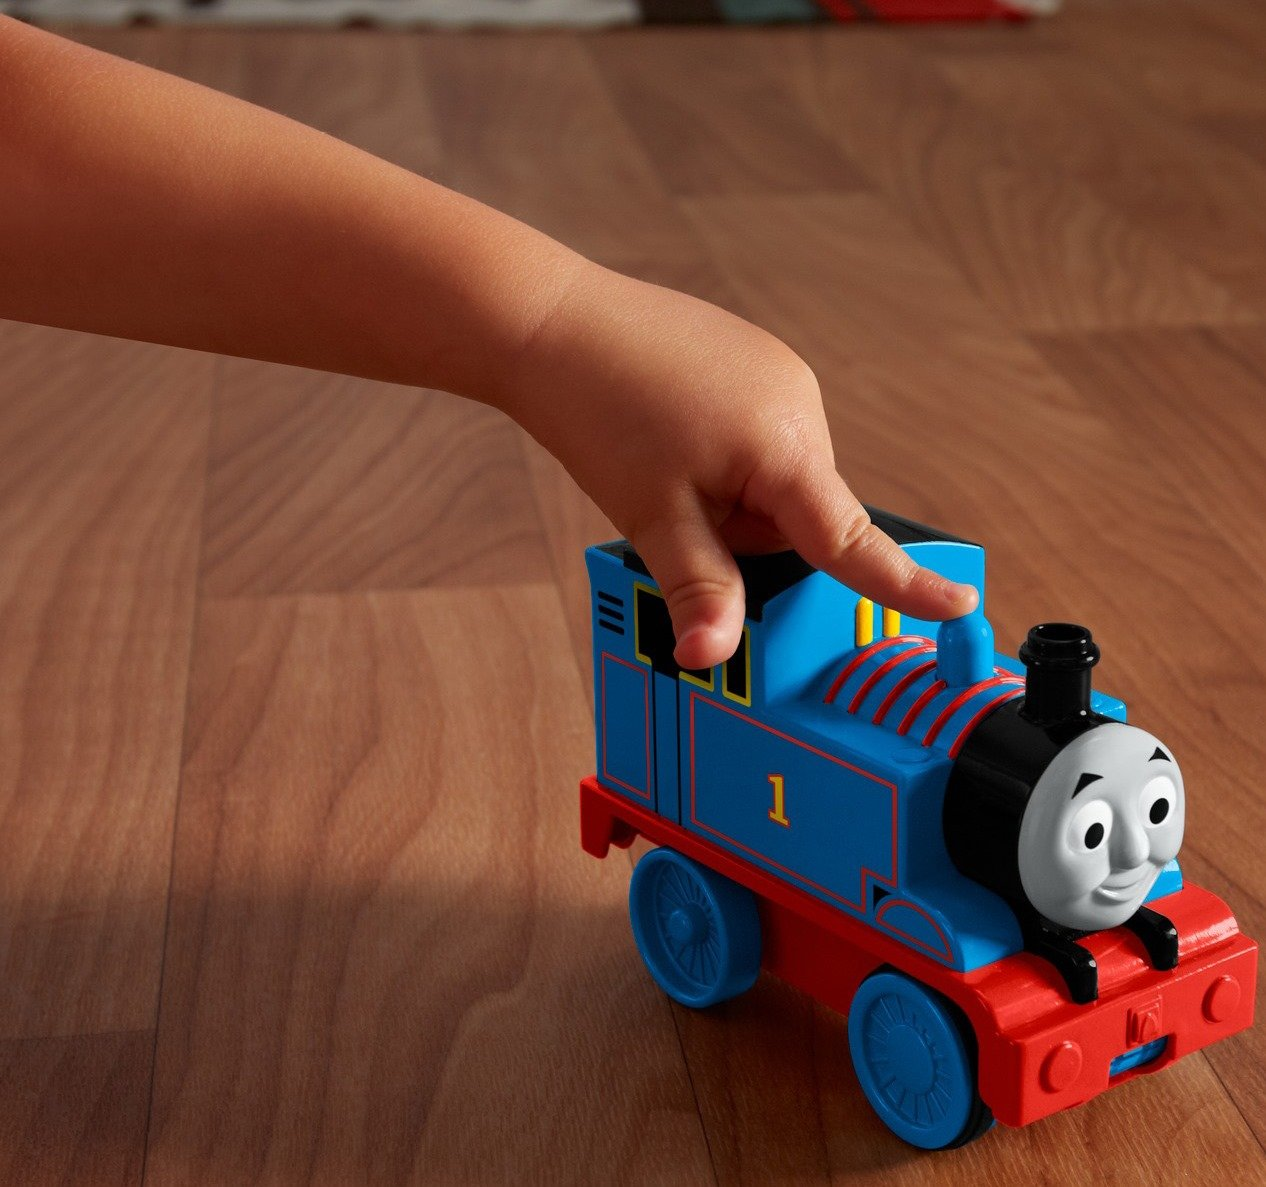 Amazon.com: Thomas & Friends Fisher-Price My First, Track Projector ...